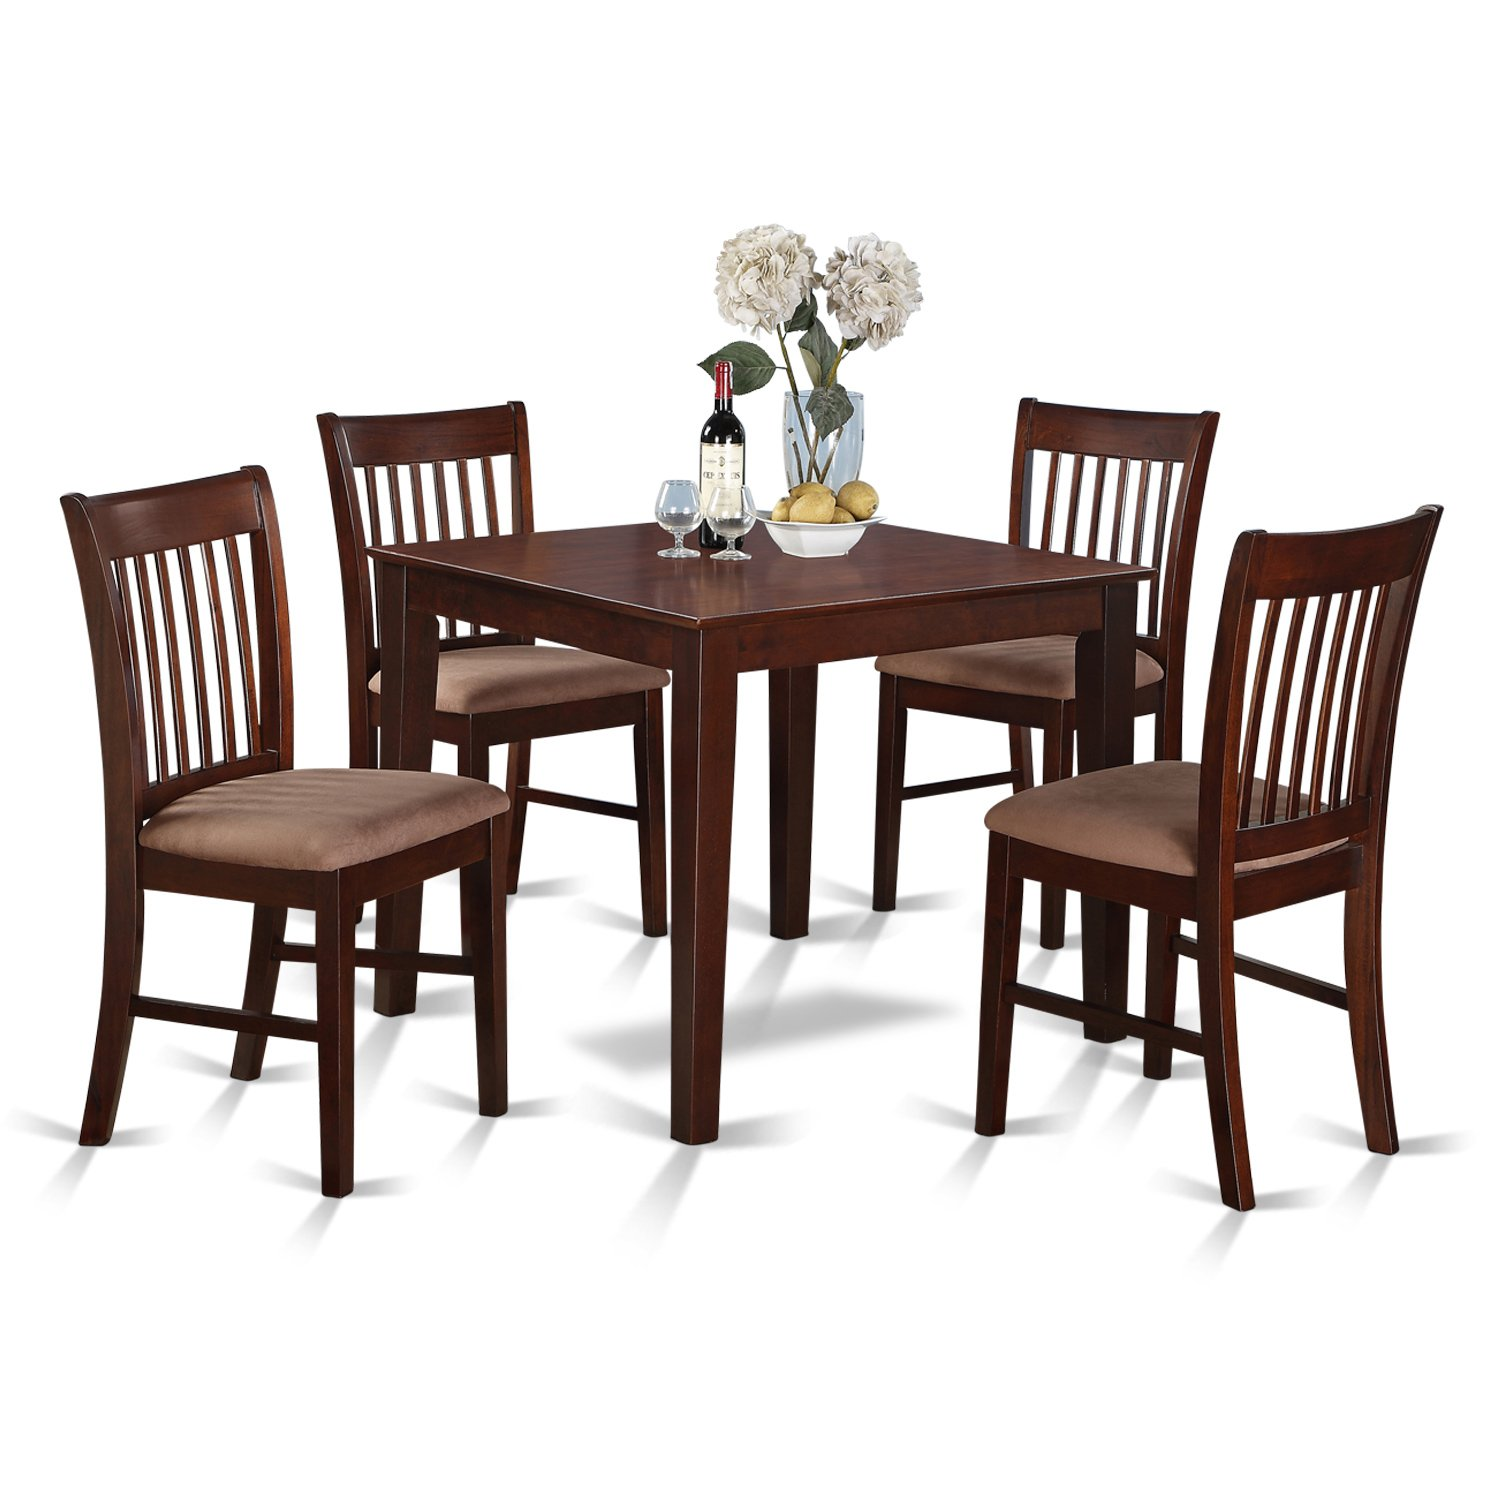 9 Pc Kitchen Table set - square Table and 9 Dining Chairs